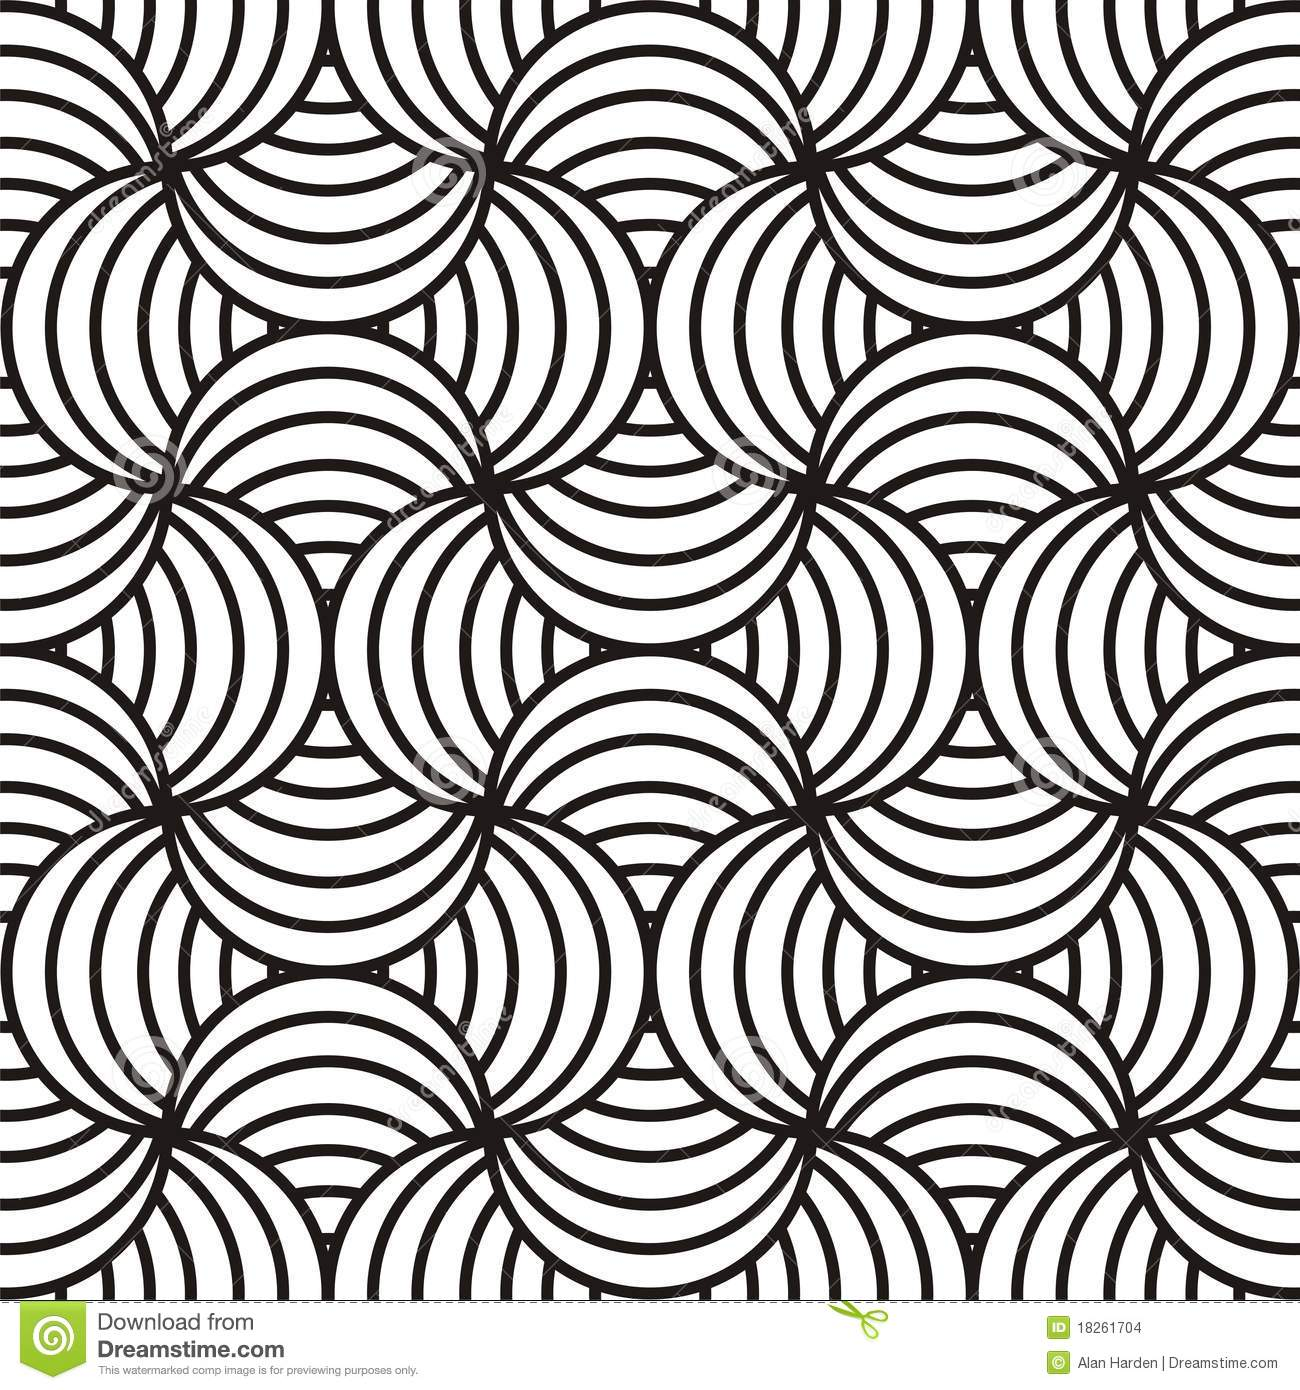 Cool Line Art Designs : Black and white line designs images